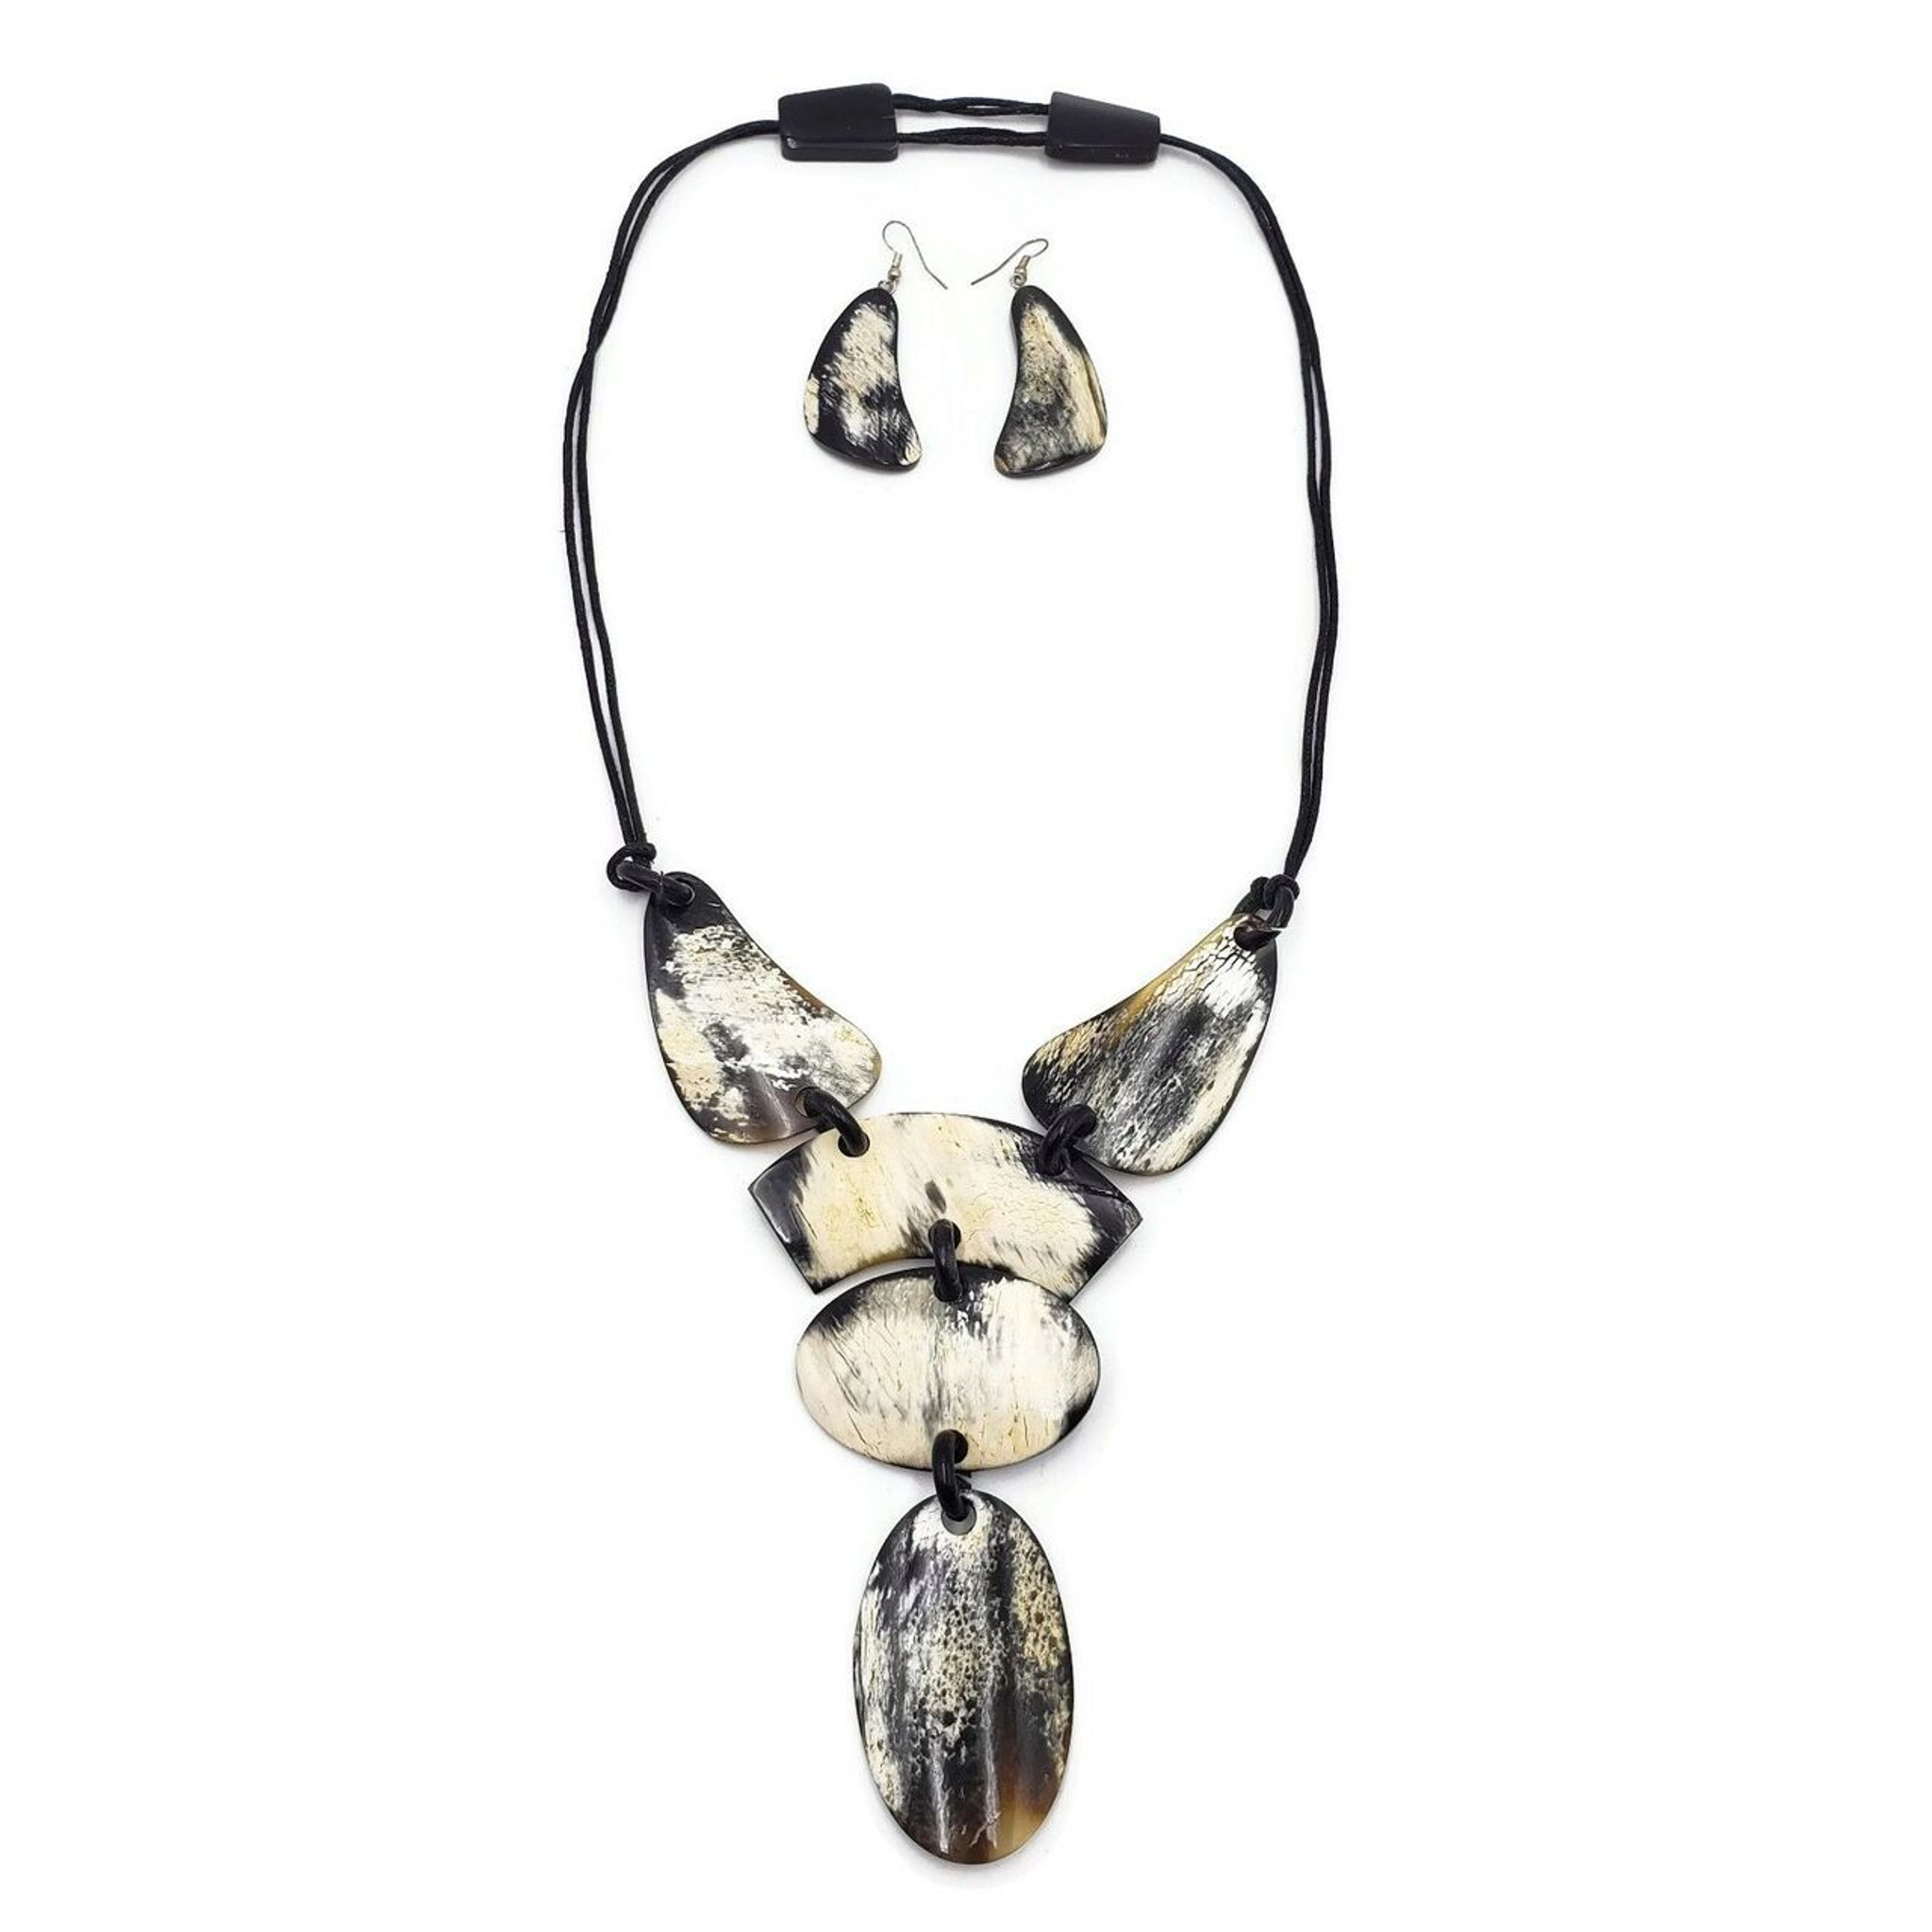 Buffalo Horn Necklace Y Necklace Genuine Horn Natural Jewelry Earring